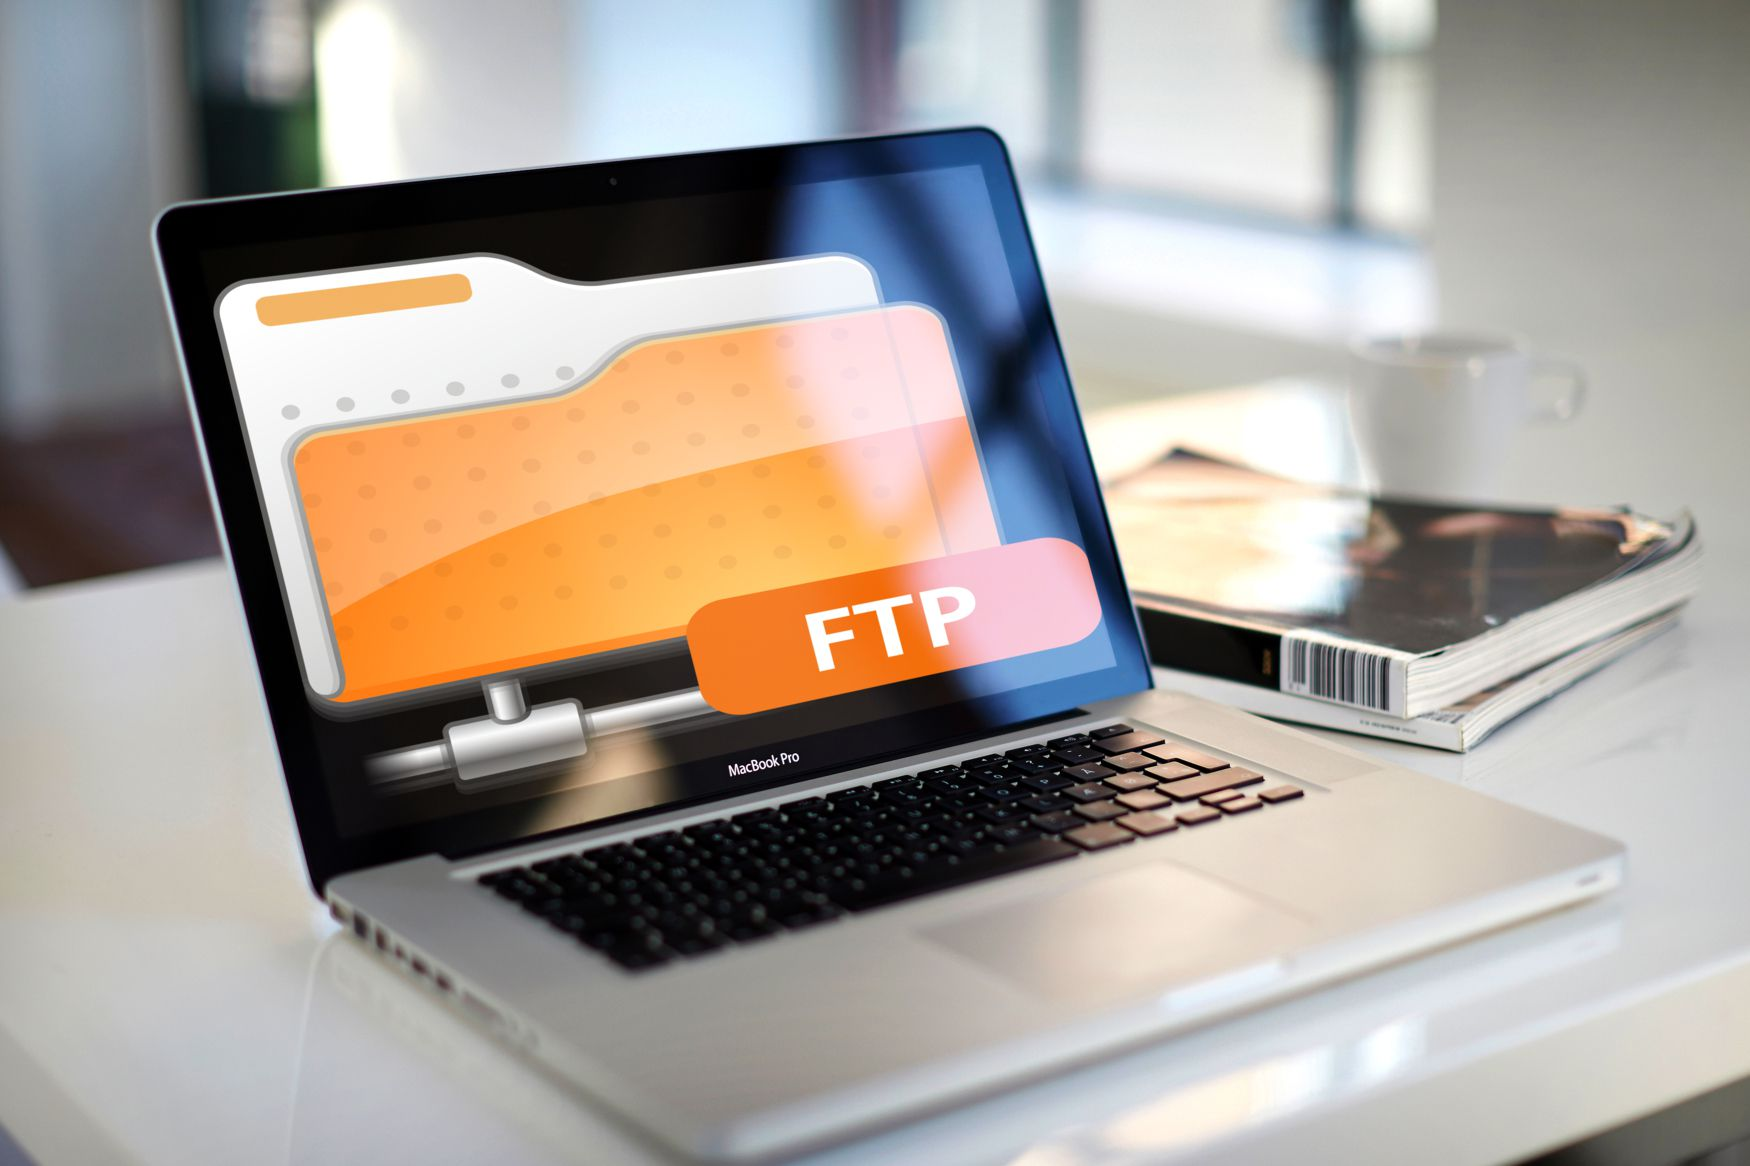 FTP on computer